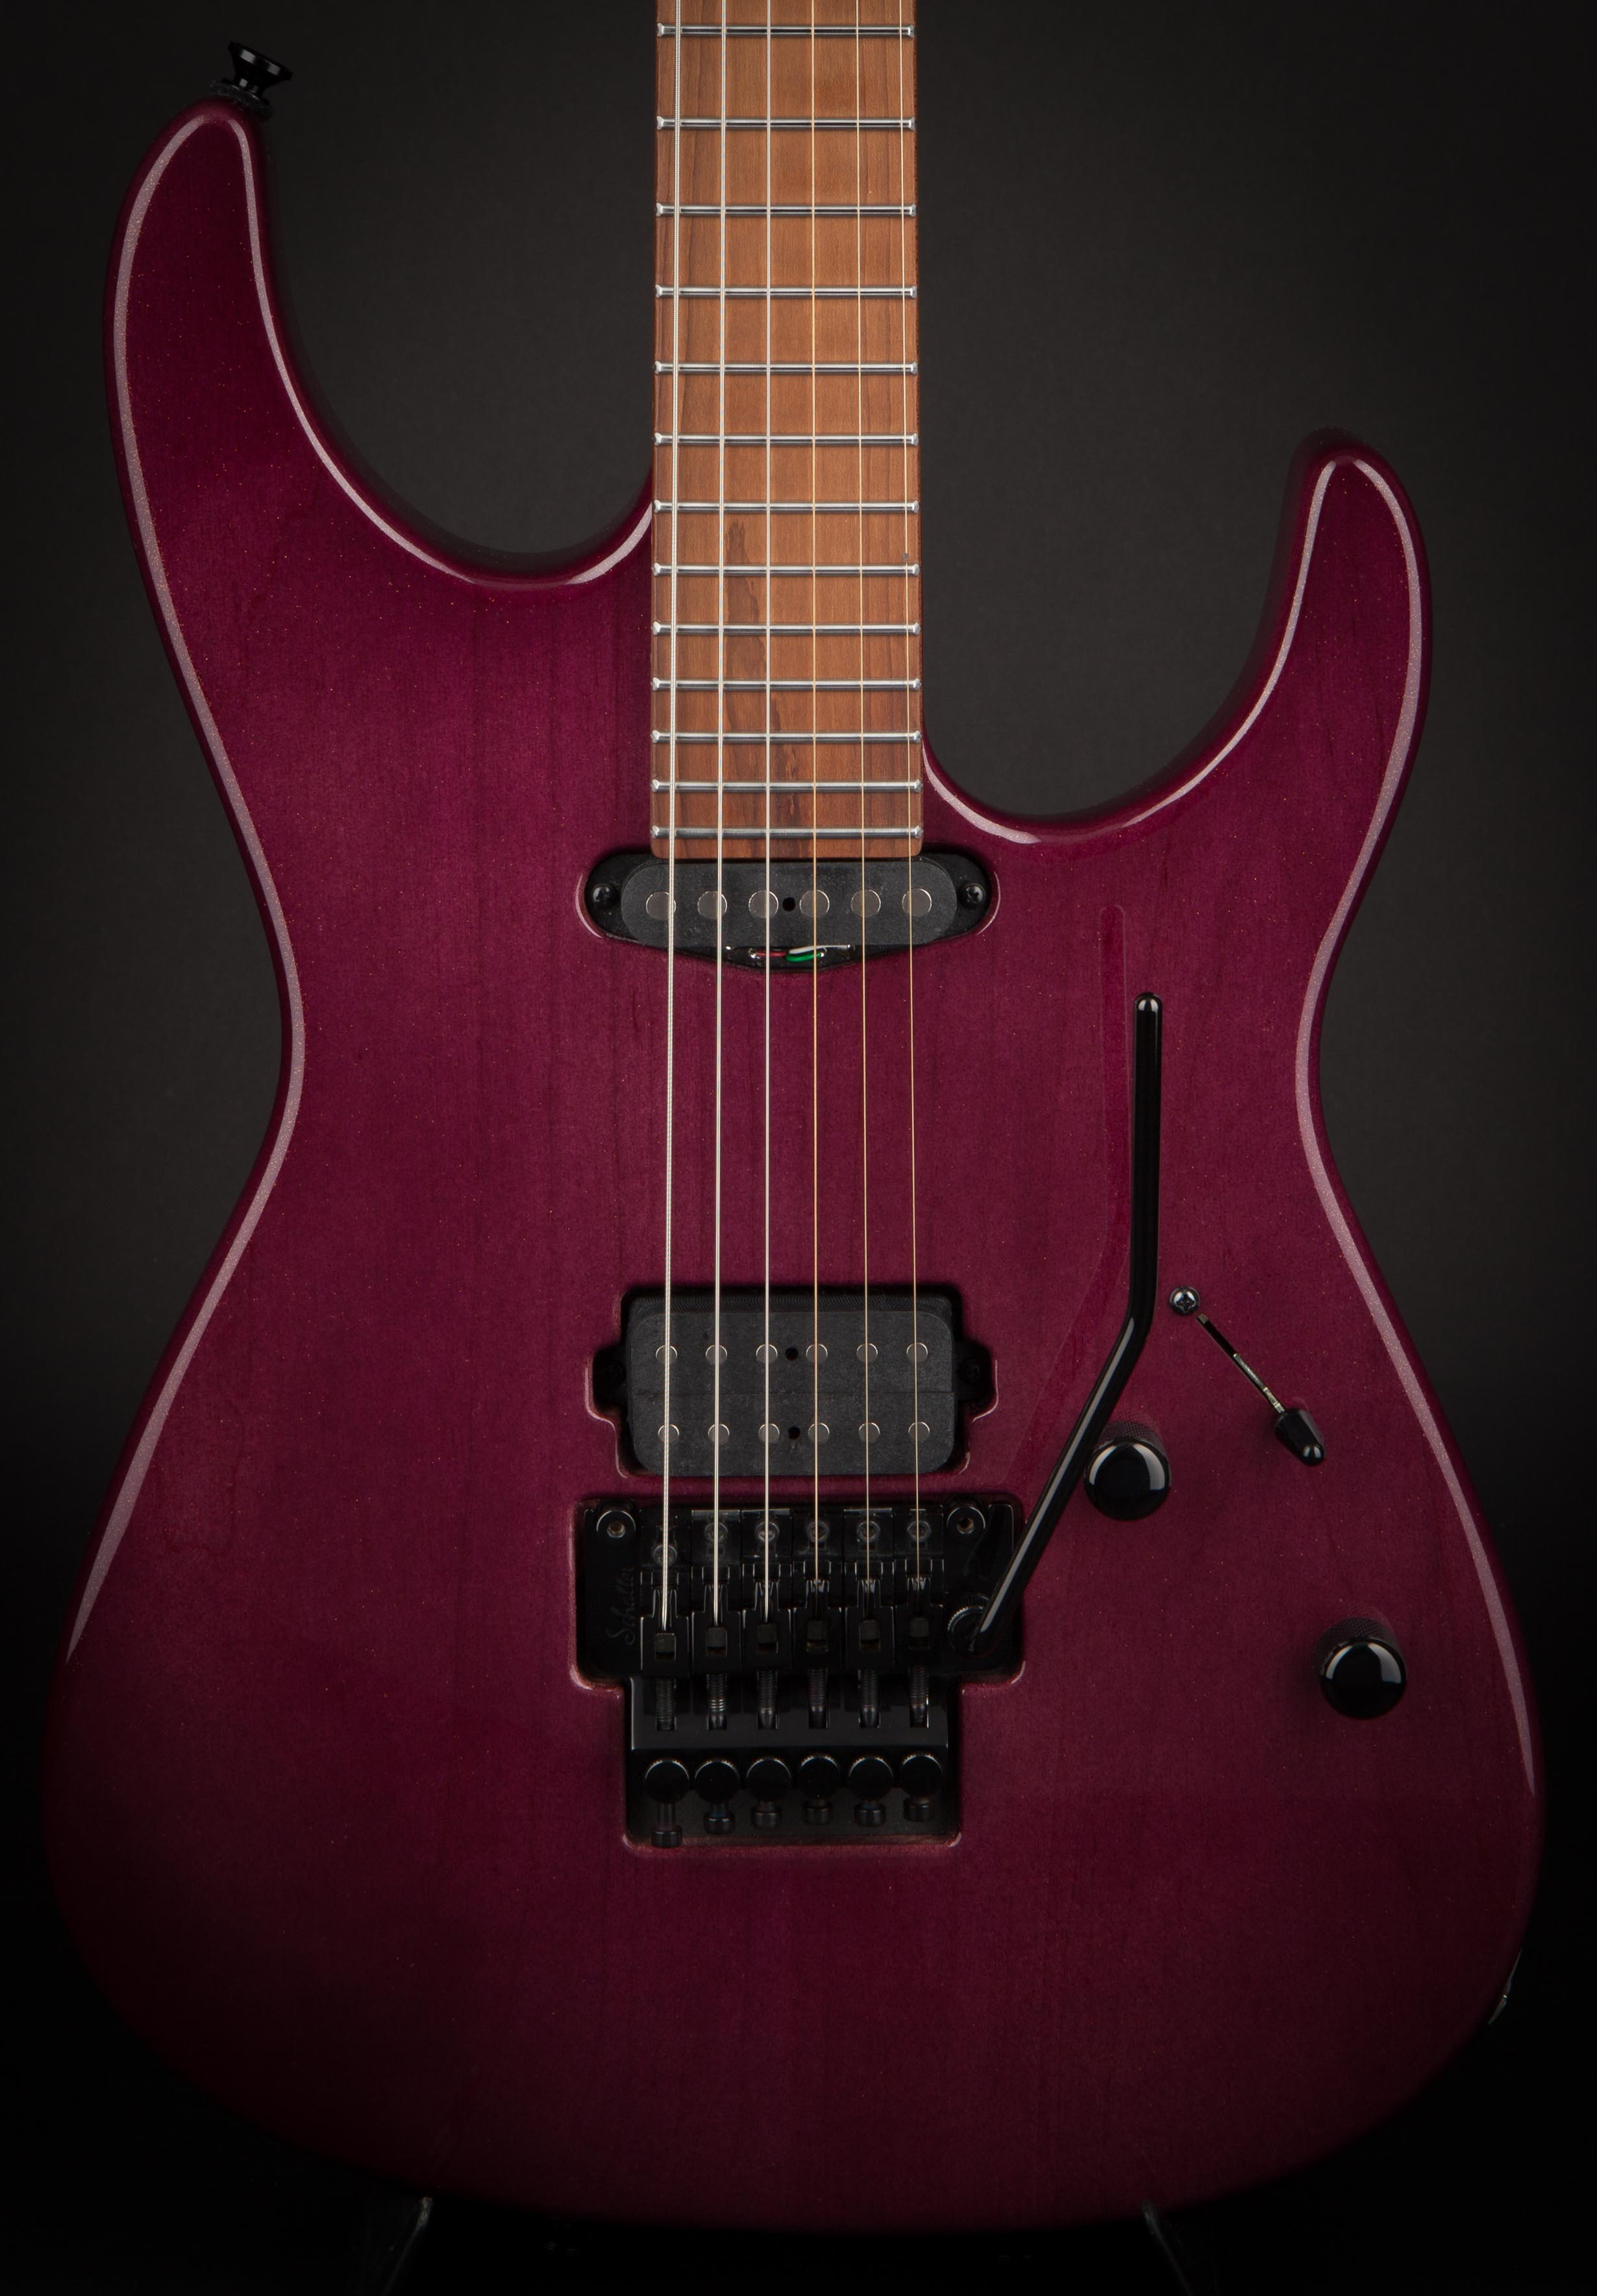 Tom Anderson Angel Player Sheer Transparent Plum #11-11-15P